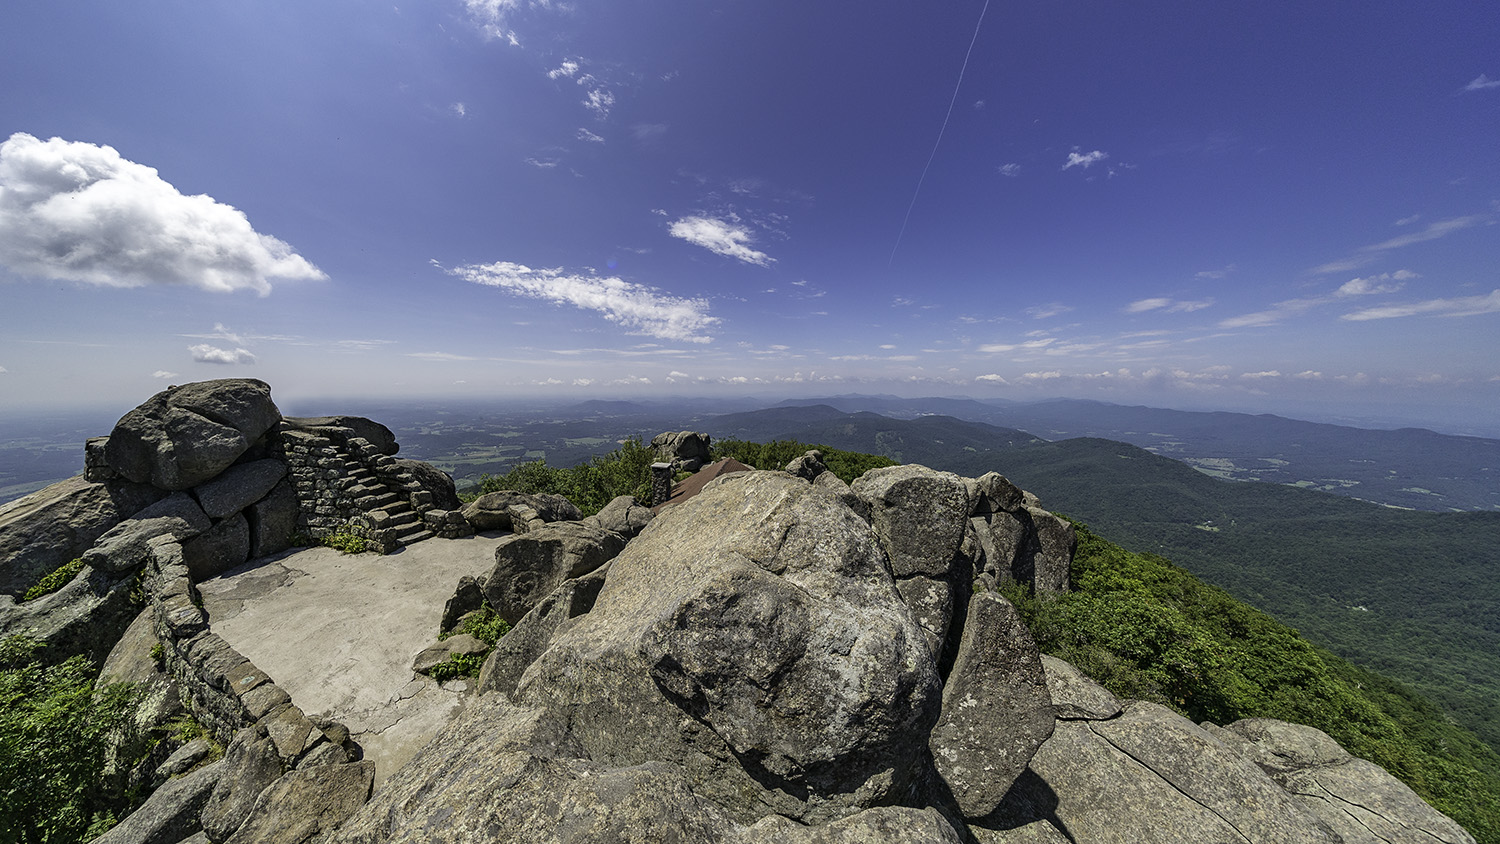 The view north from Sharp Top Mountain at The Peaks of Otter on the Blue Ridge Parkway in Virginia.  Photo by Zygmunt Spray .